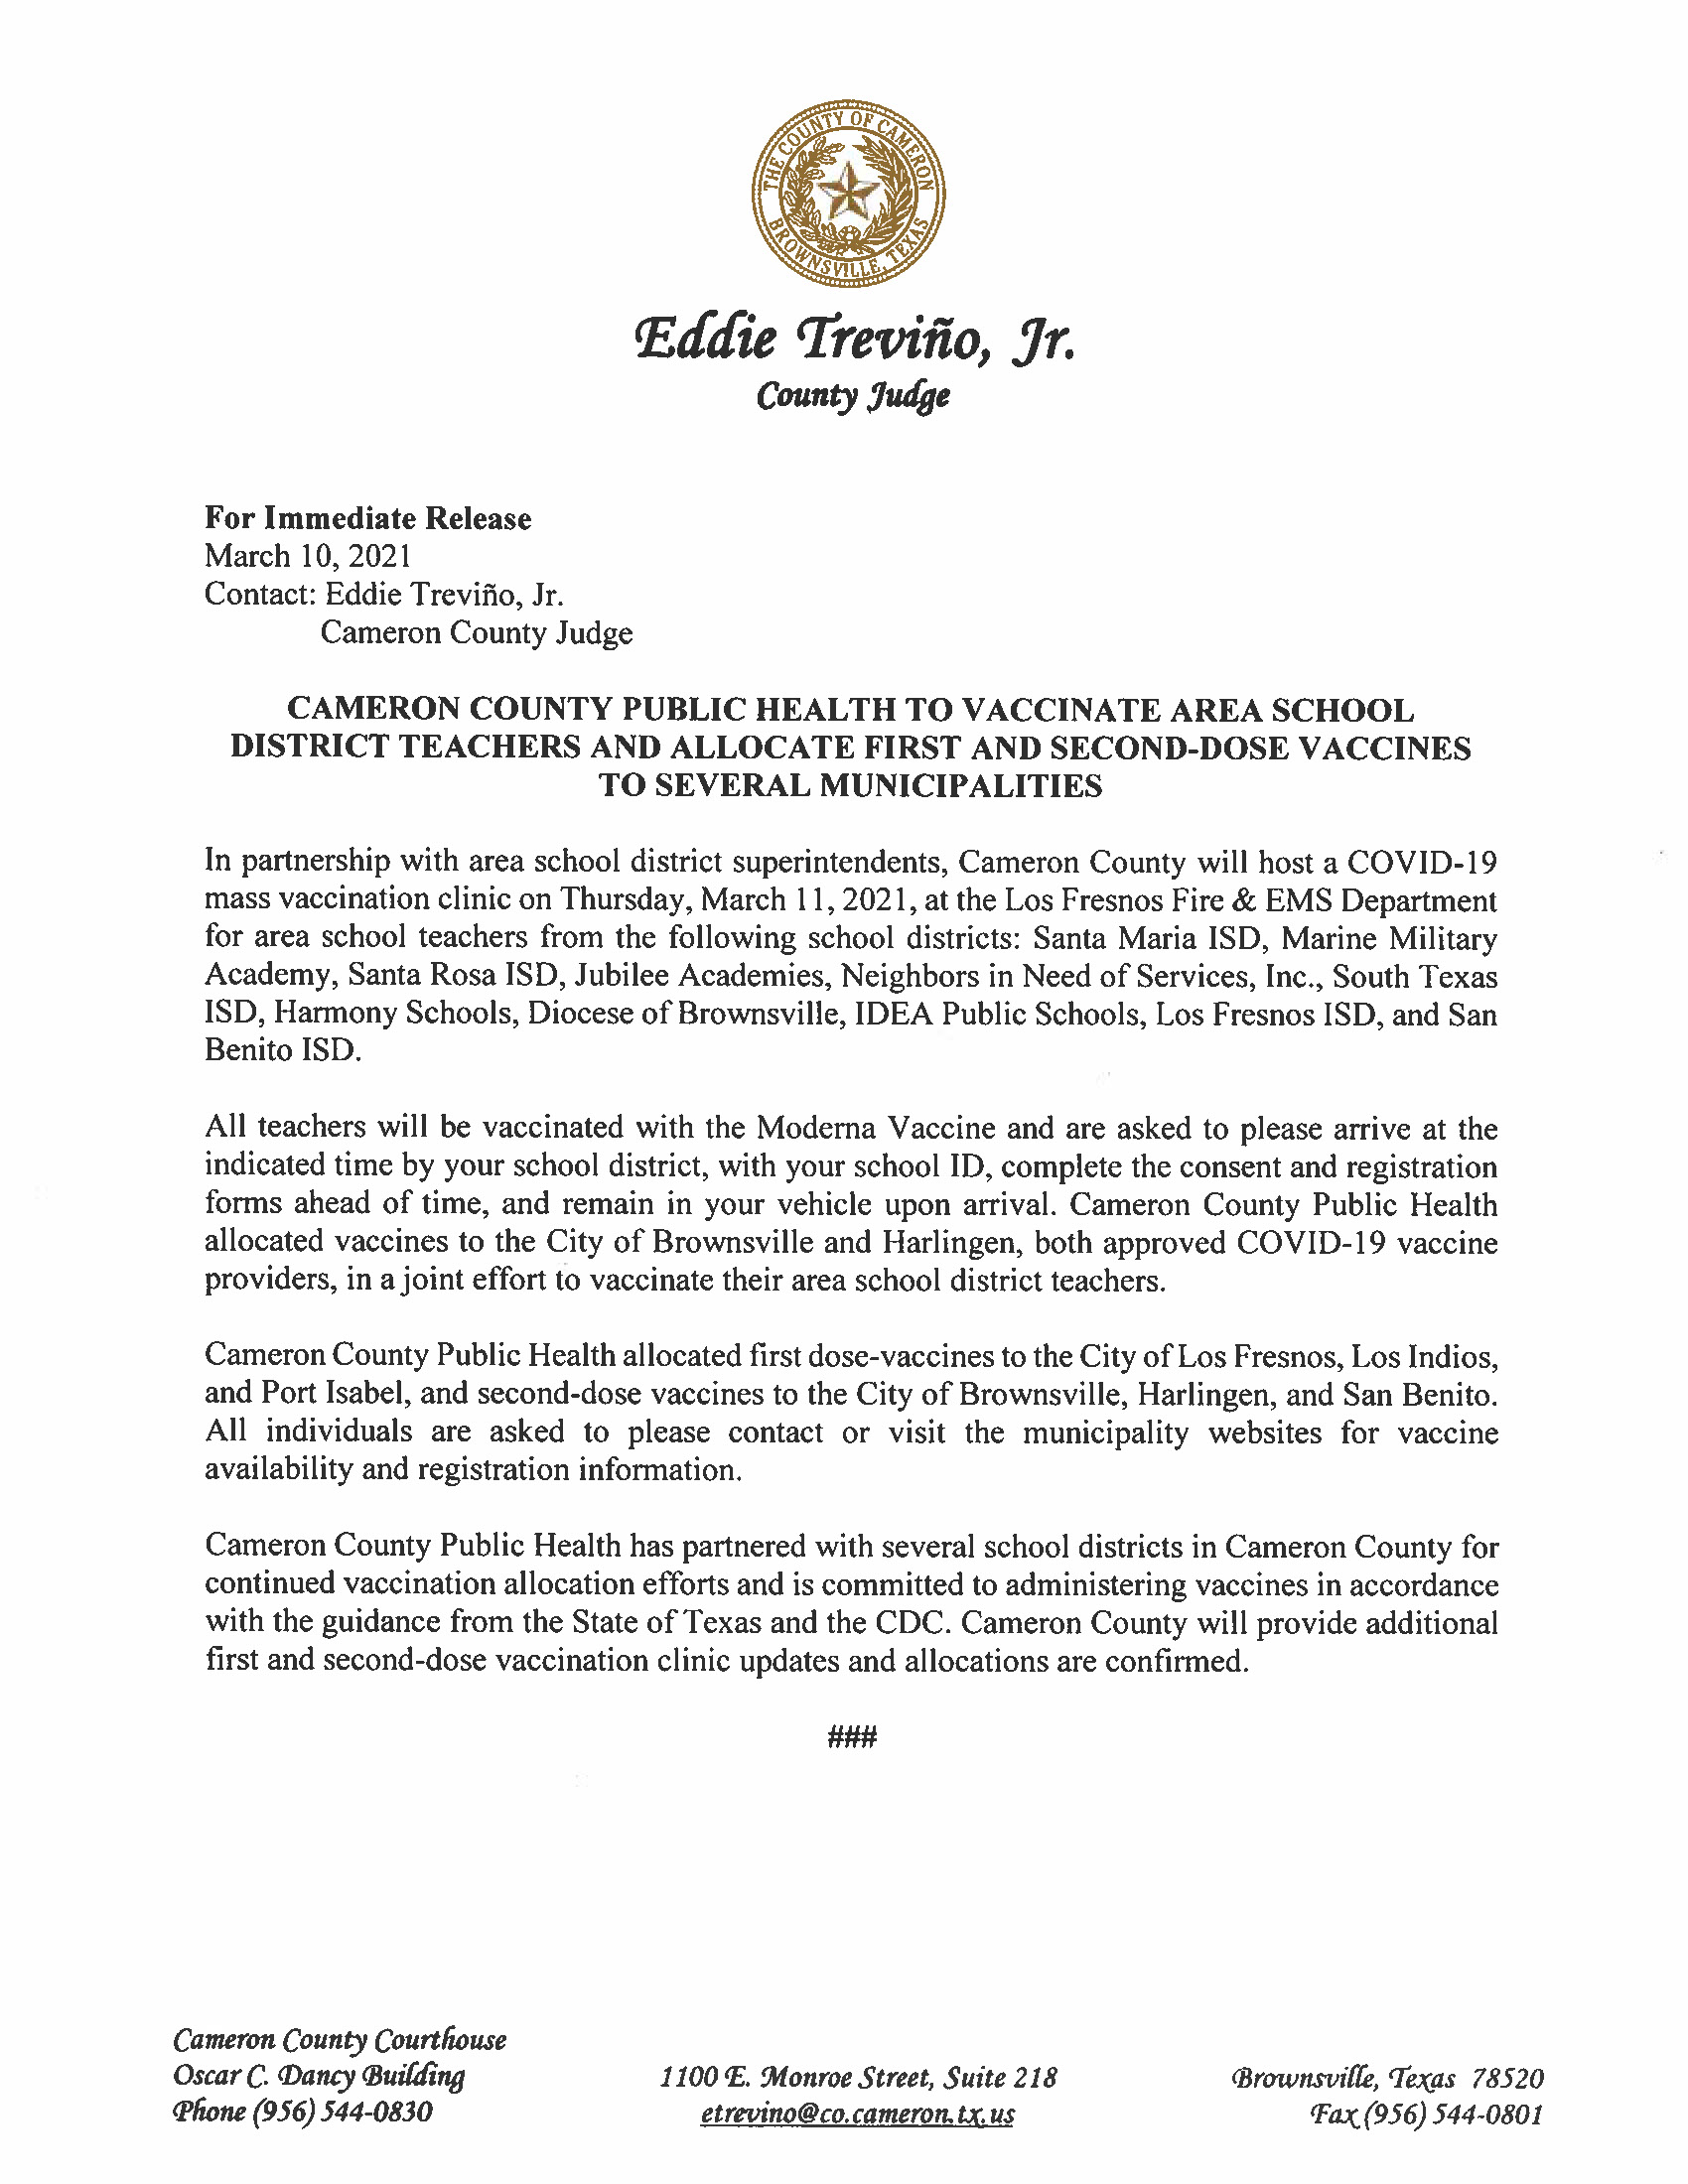 3.10.21 Cameron County Public Health To Vaccinate Area School District Teachers And Allocate First And Second Dose Vaccines To Several Municipalities